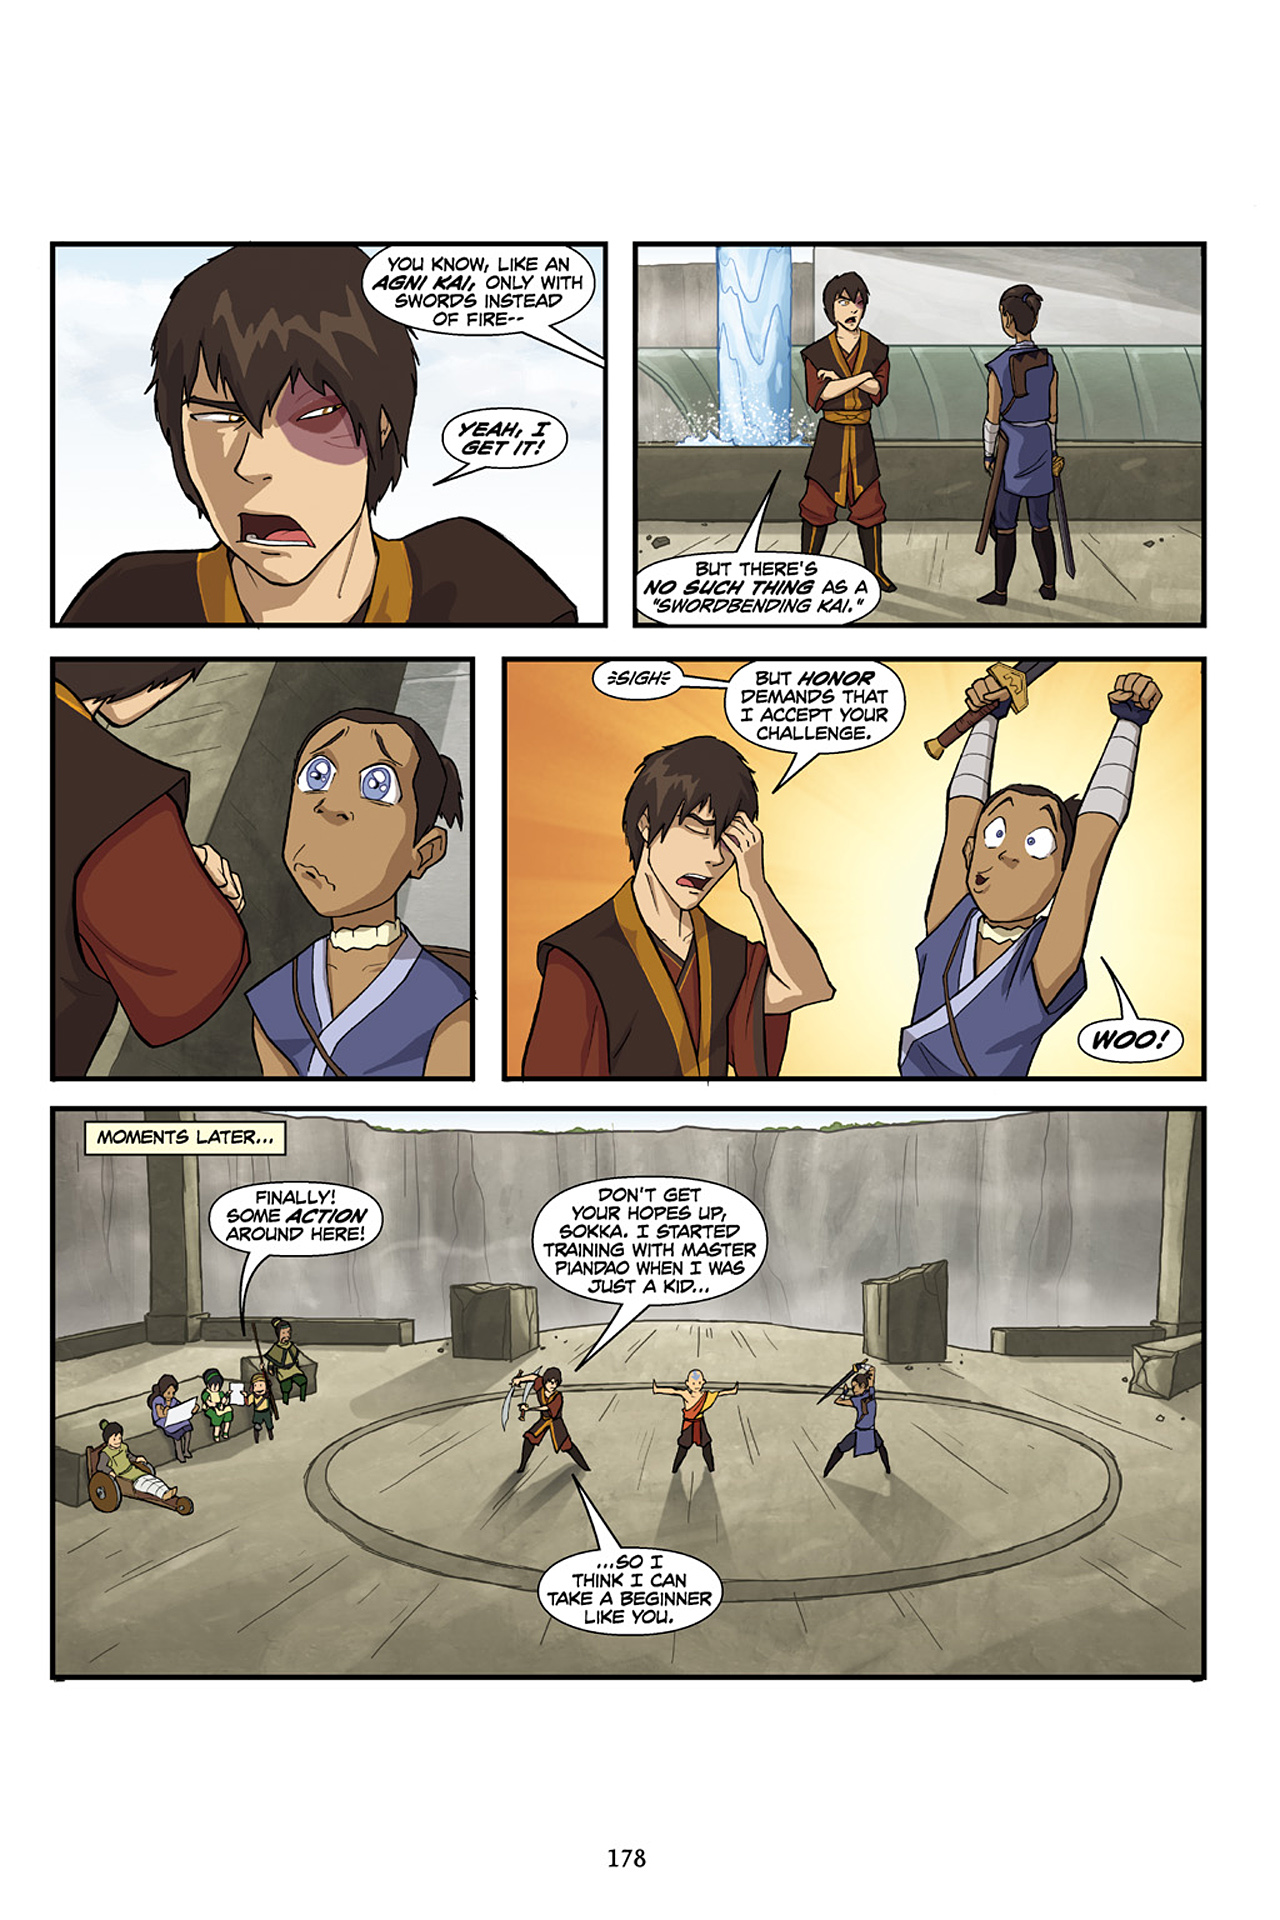 Nickelodeon Avatar: The Last Airbender - The Lost Adventures chap full pic 179